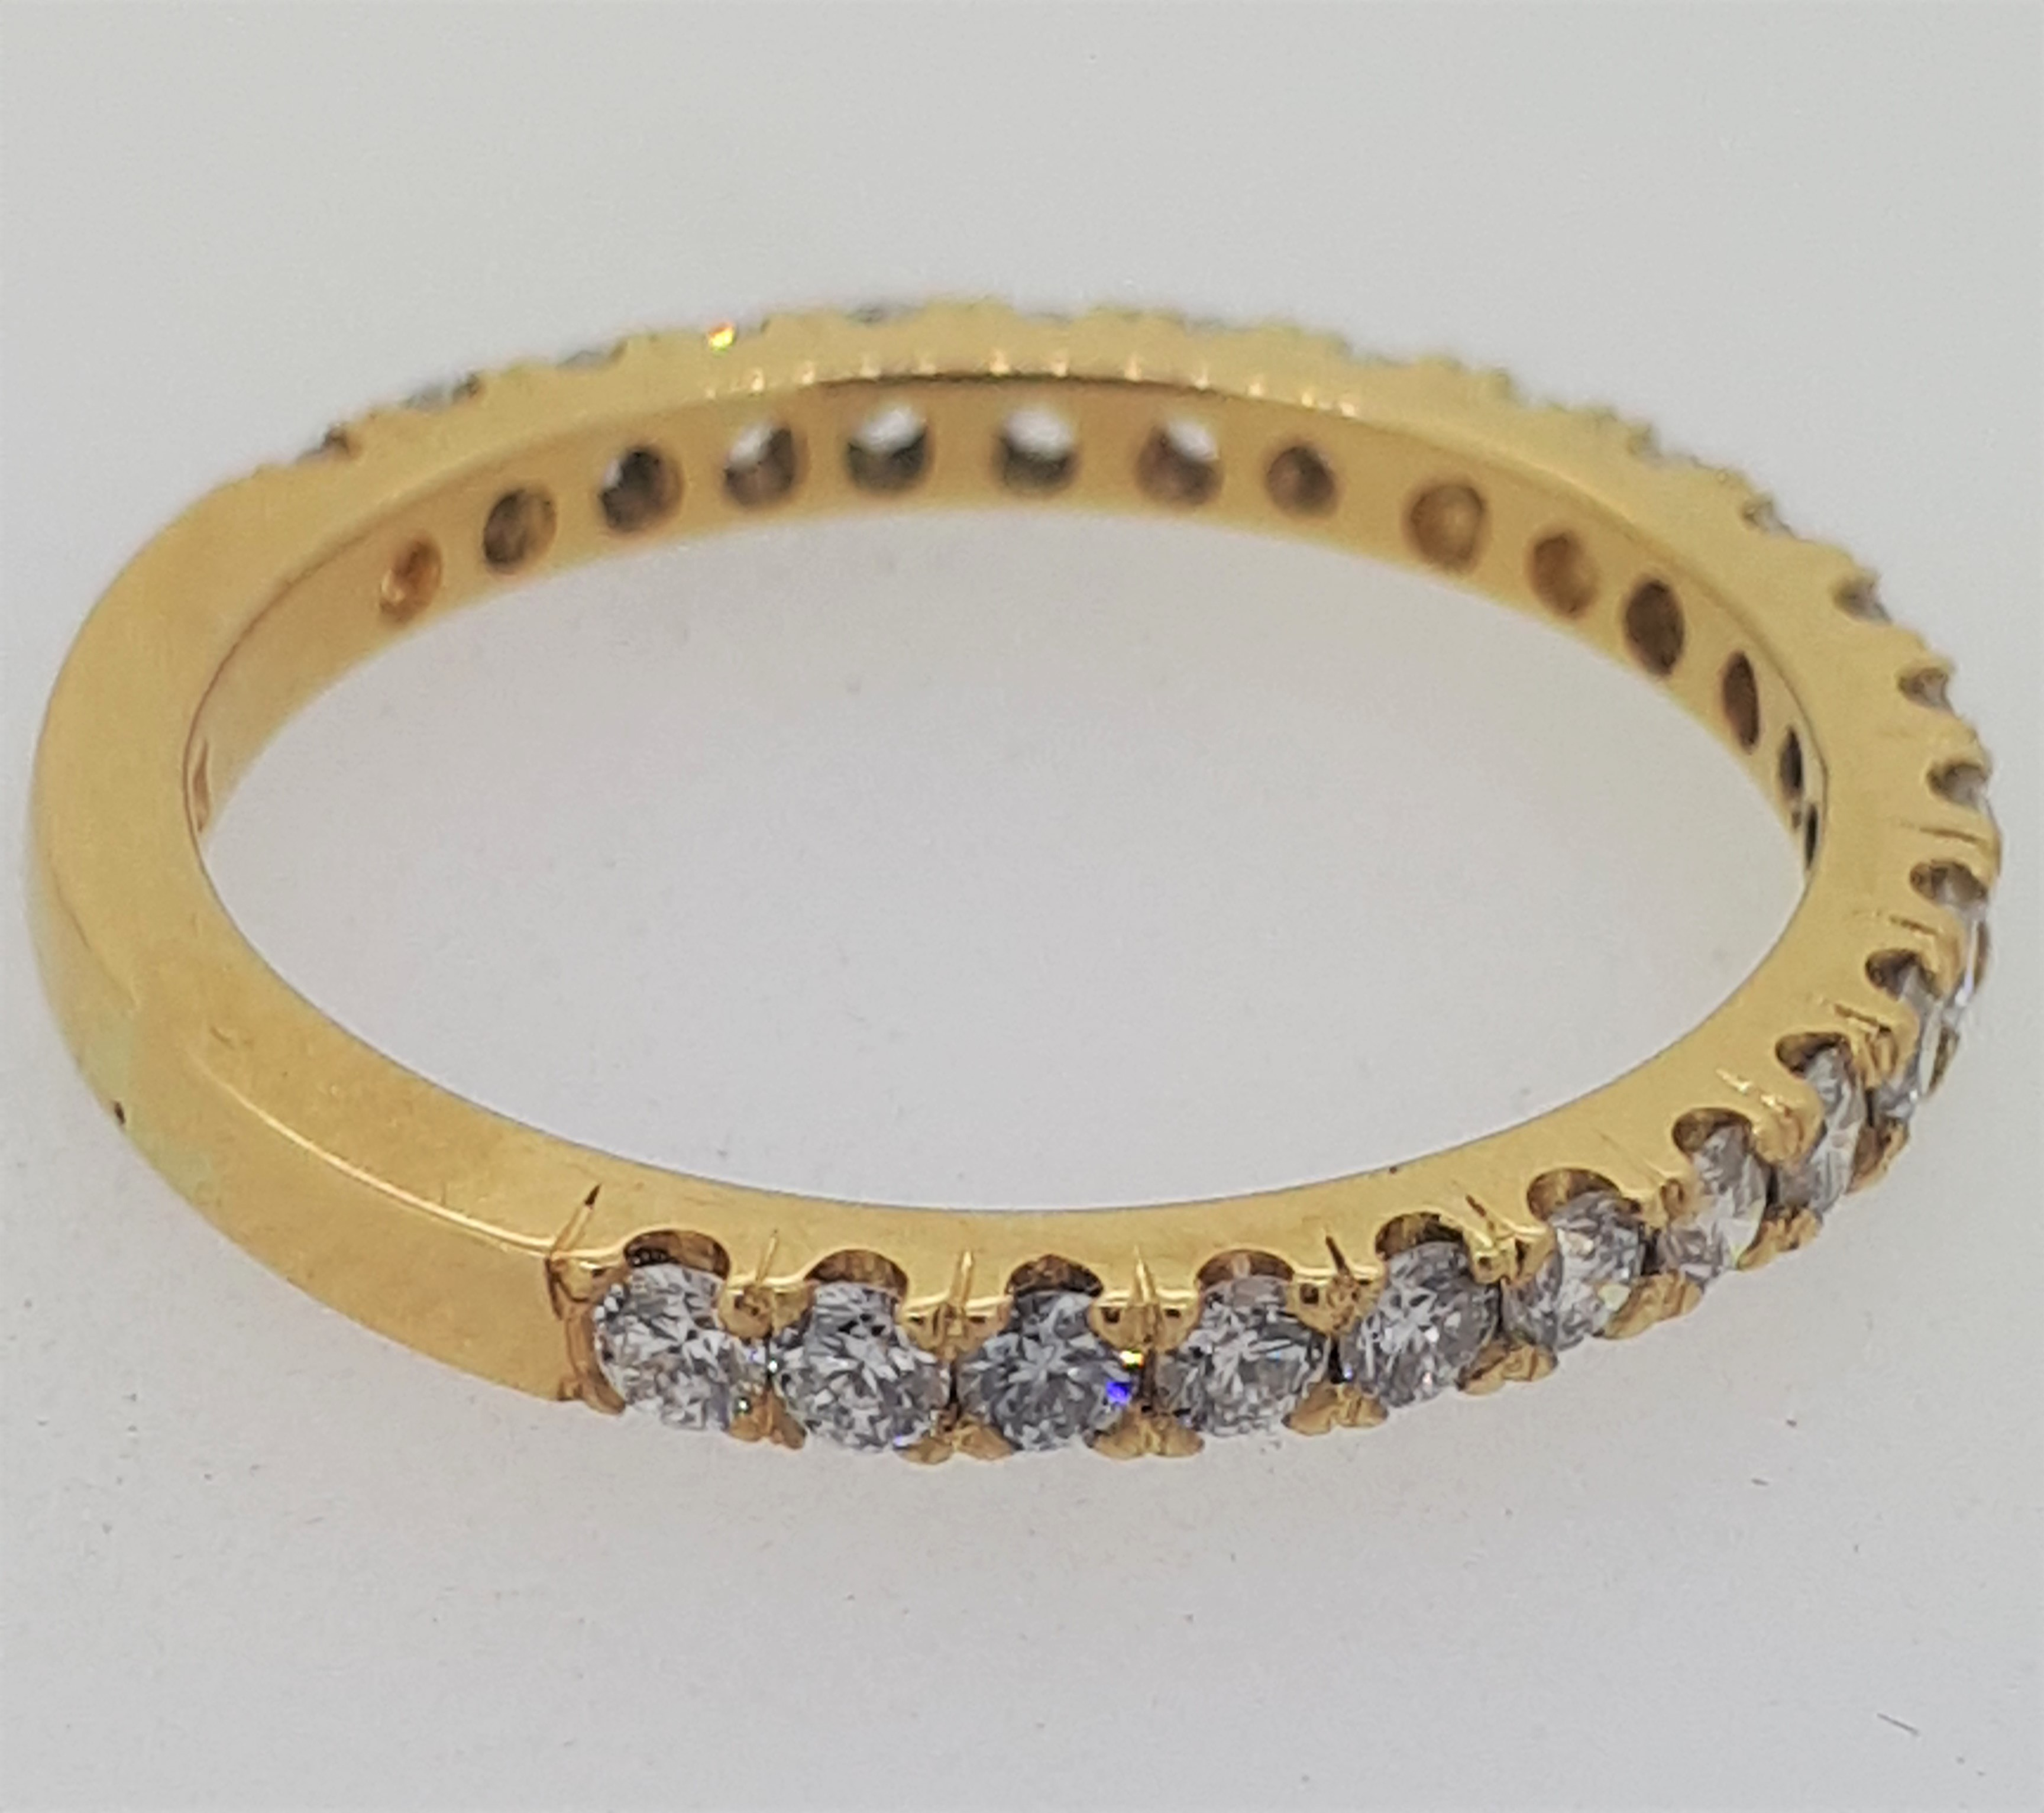 Handmade 18ct (750) yellow Gold 0.25ct 3/4 Claw Set Eternity Ring - Image 3 of 6